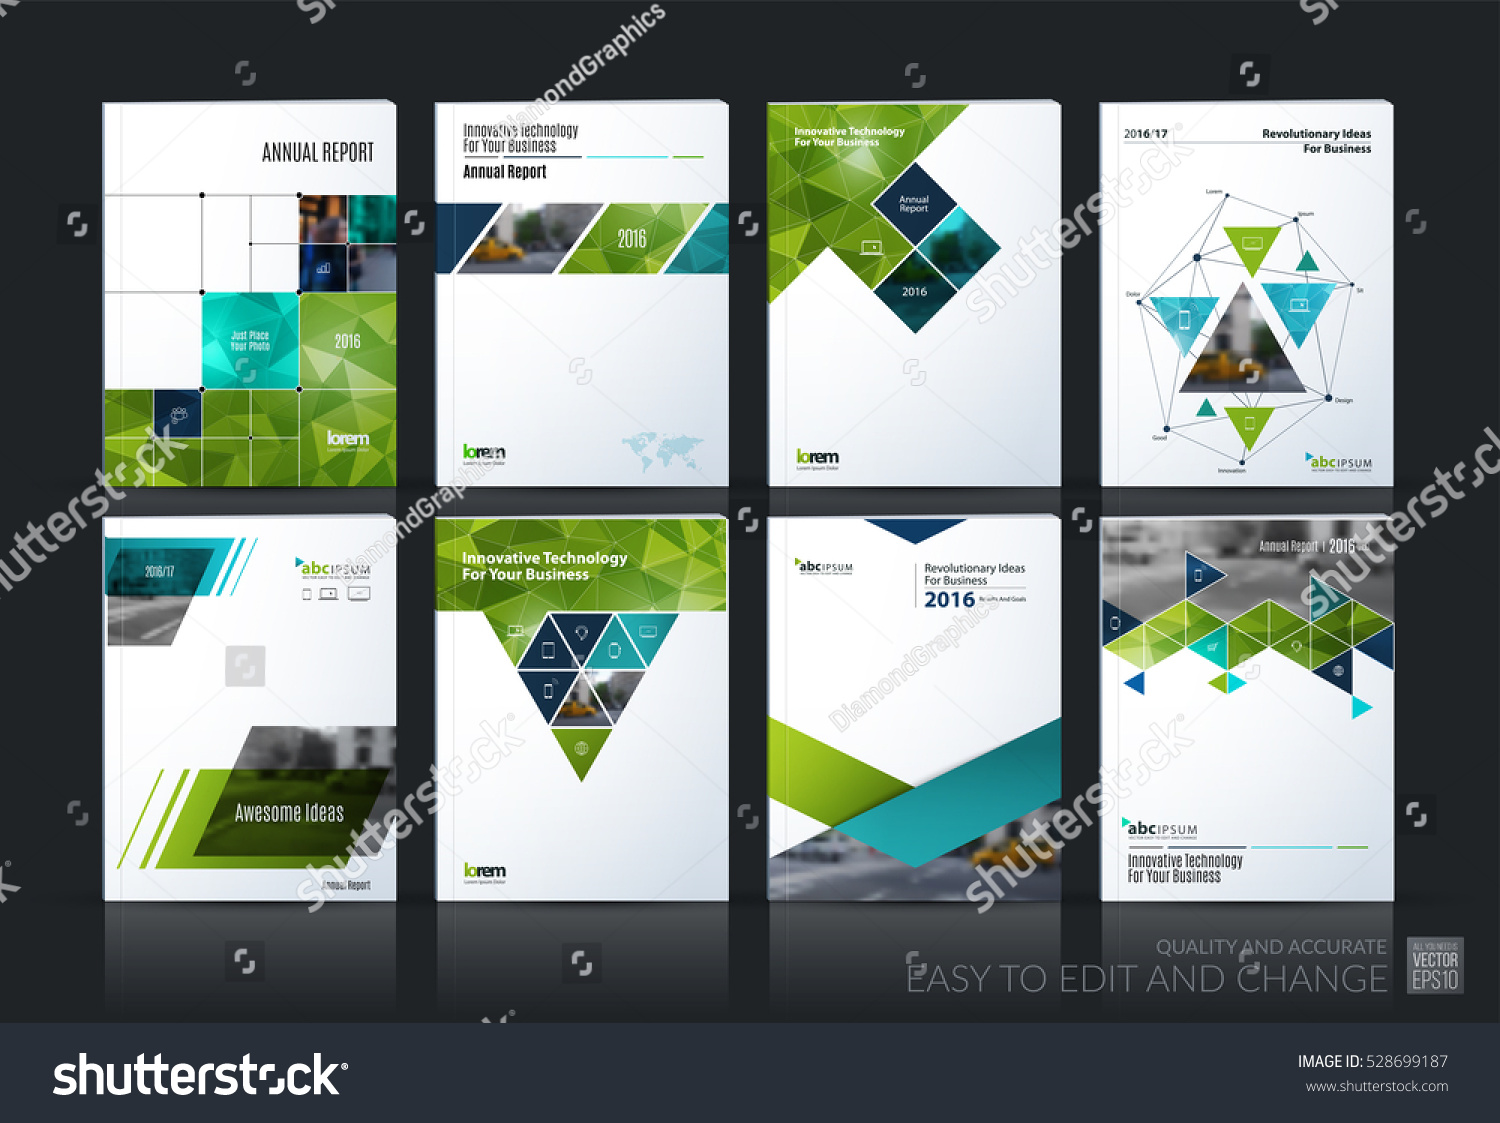 Business vector set Brochure template layout cover design annual report magazine flyer in A4 with green geometric shapes squares triangles arrows for IT business building Abstract